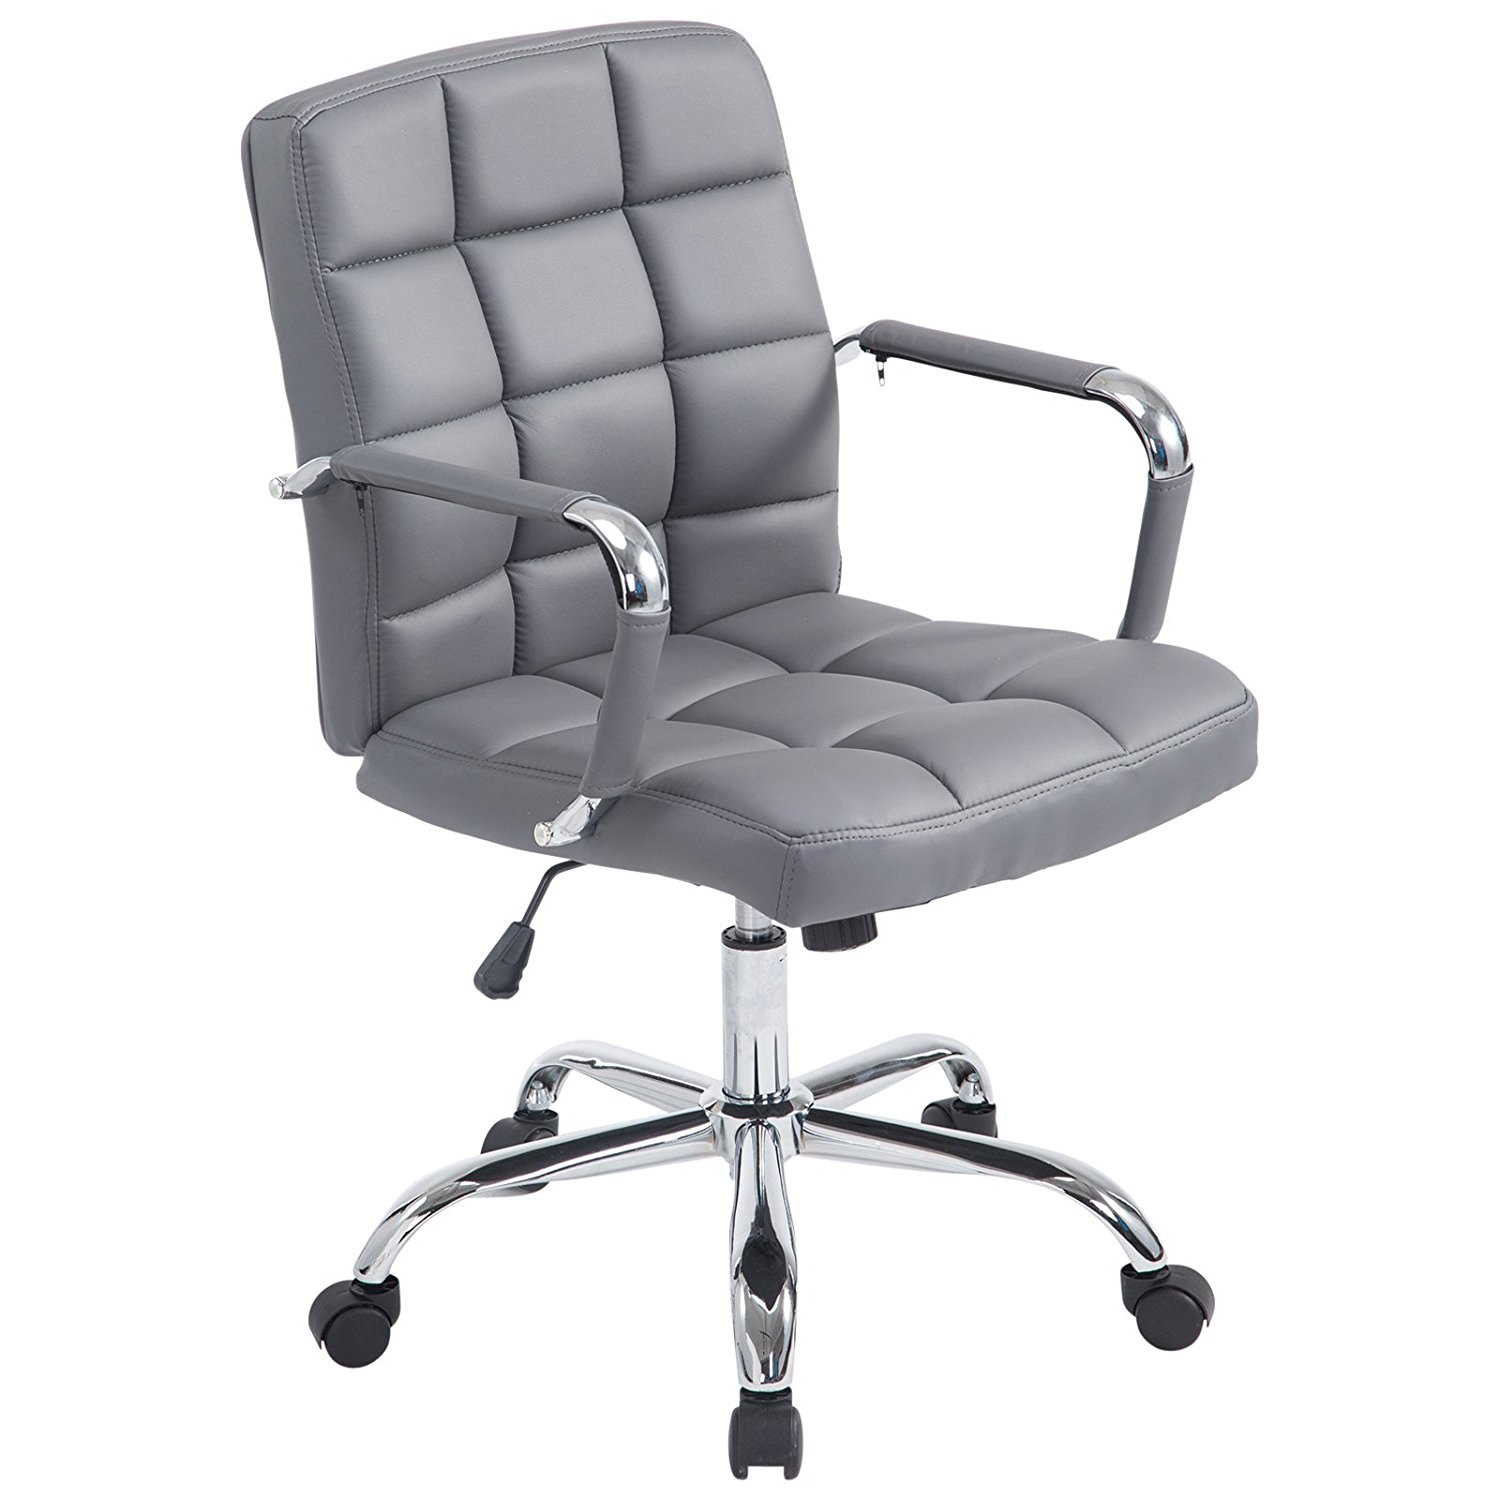 office chair deals white plastic lawn chairs target 13 cyber monday you can get on amazon furniture